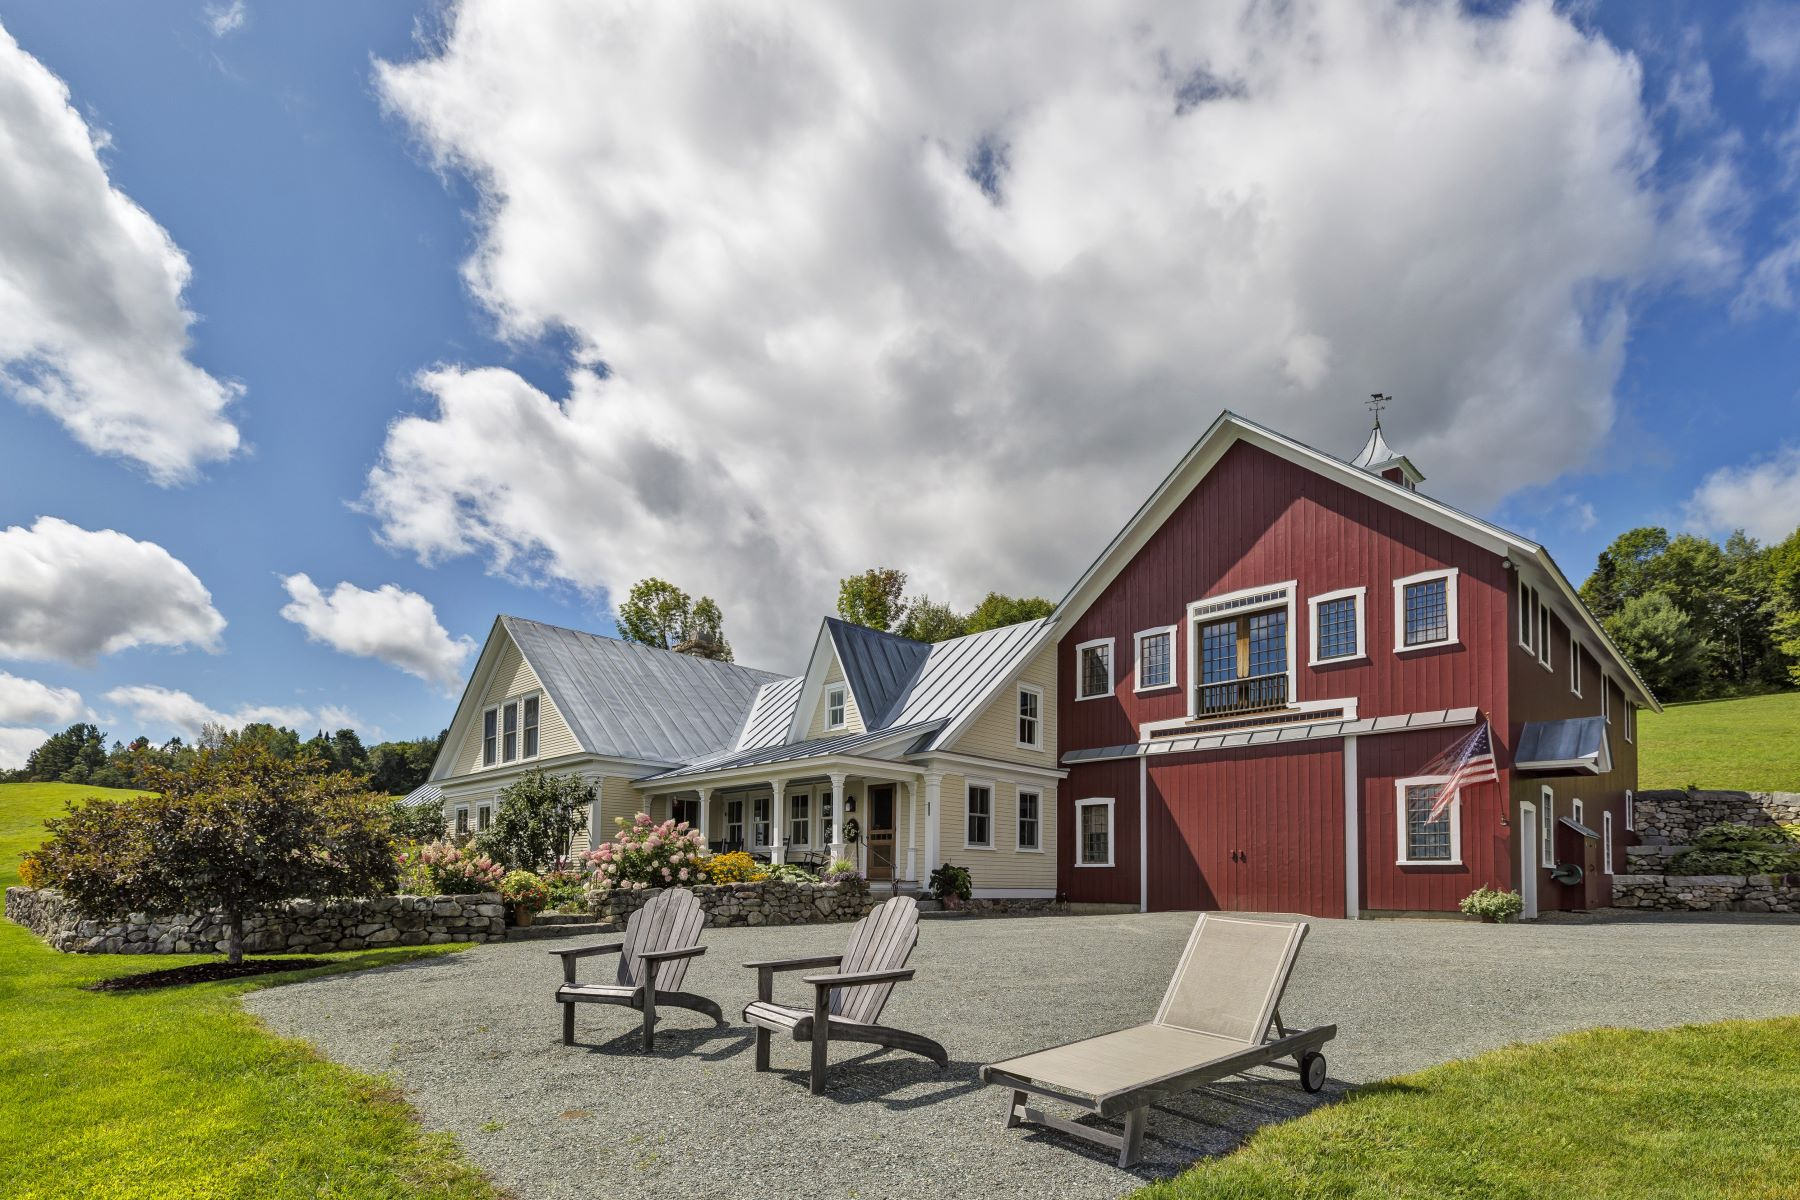 Single Family Homes for Sale at Point of View Farm 868 Groton Rd Barnet, Vermont 05862 United States